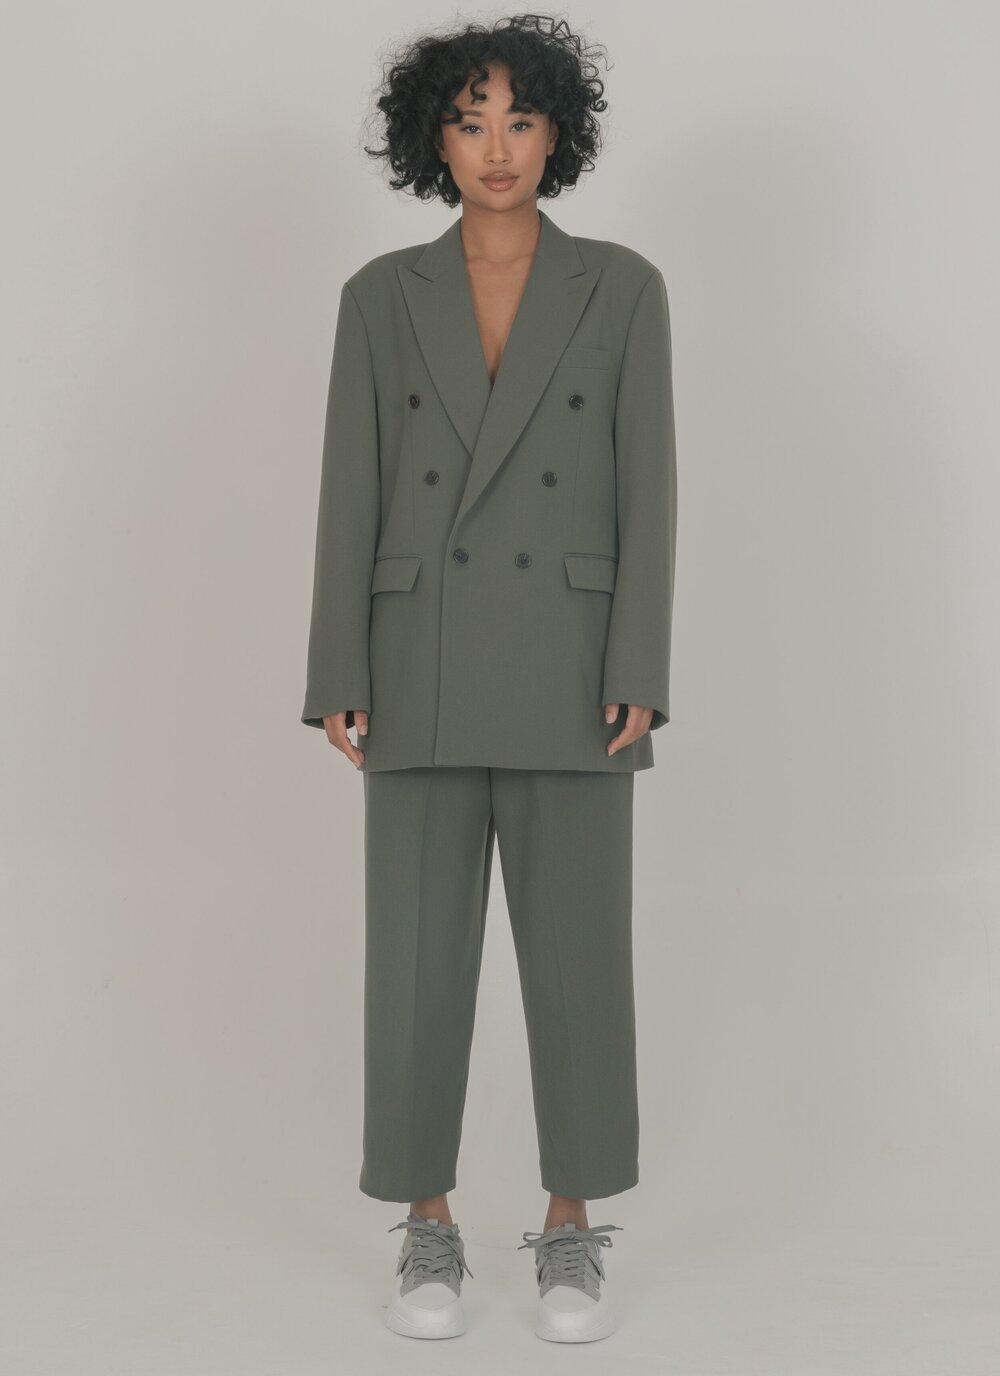 Cold Laundry Olive Suit